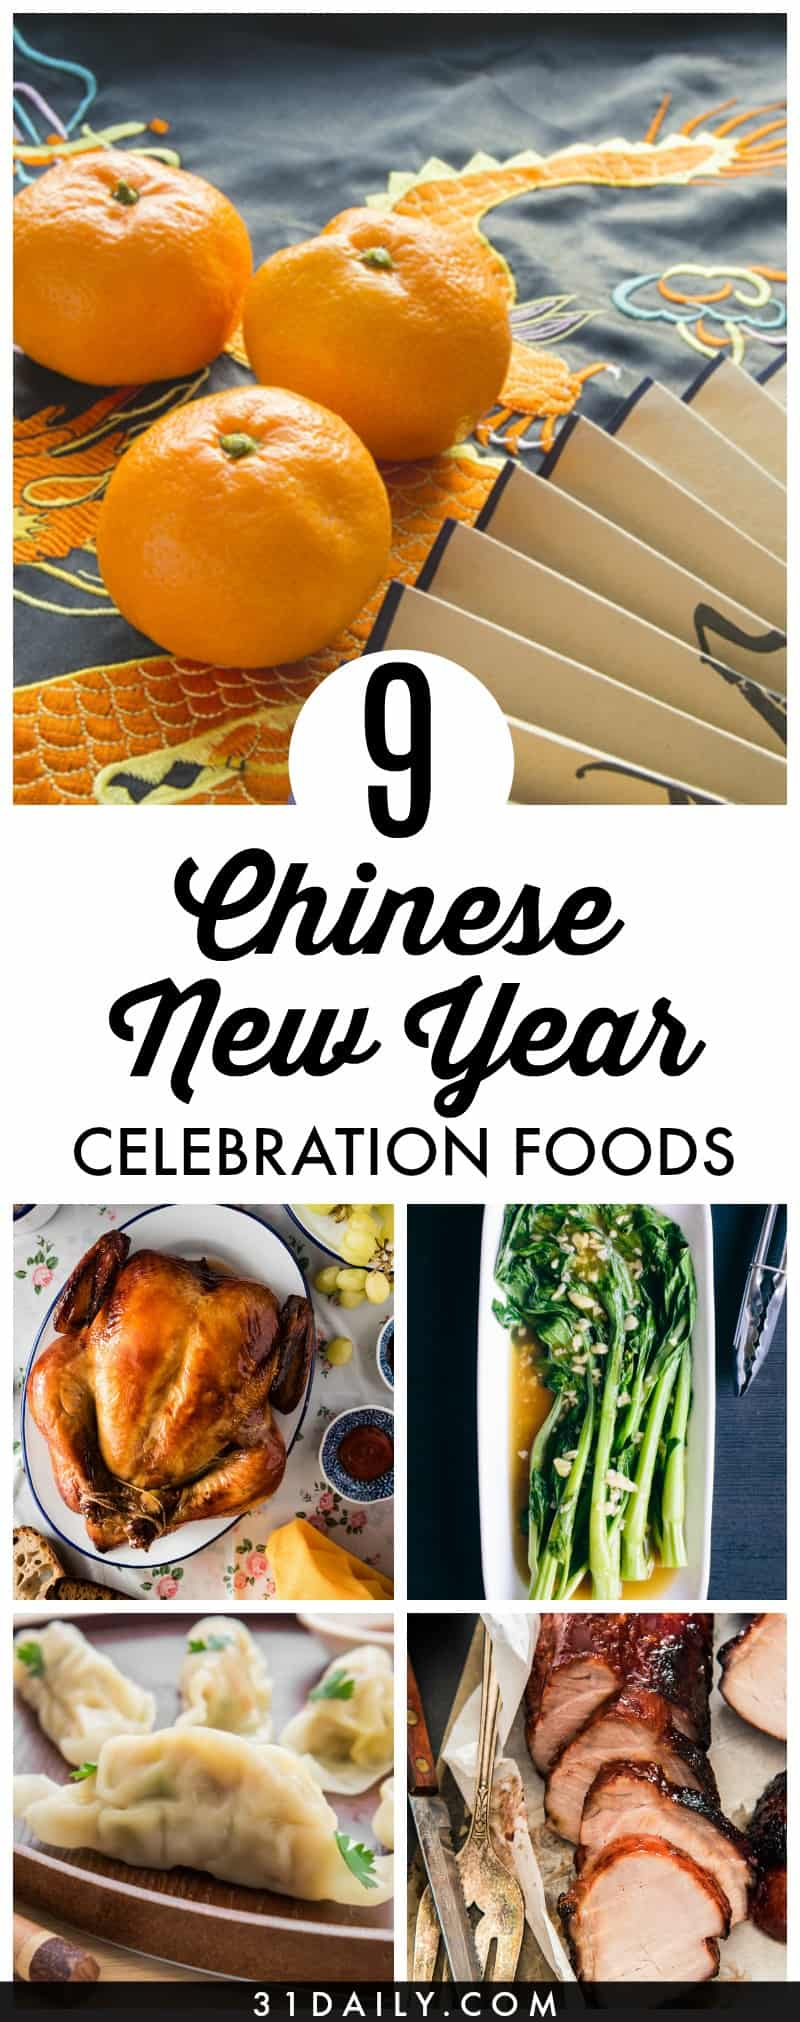 9 Chinese New Year Foods to Celebrate With | 31Daily.com